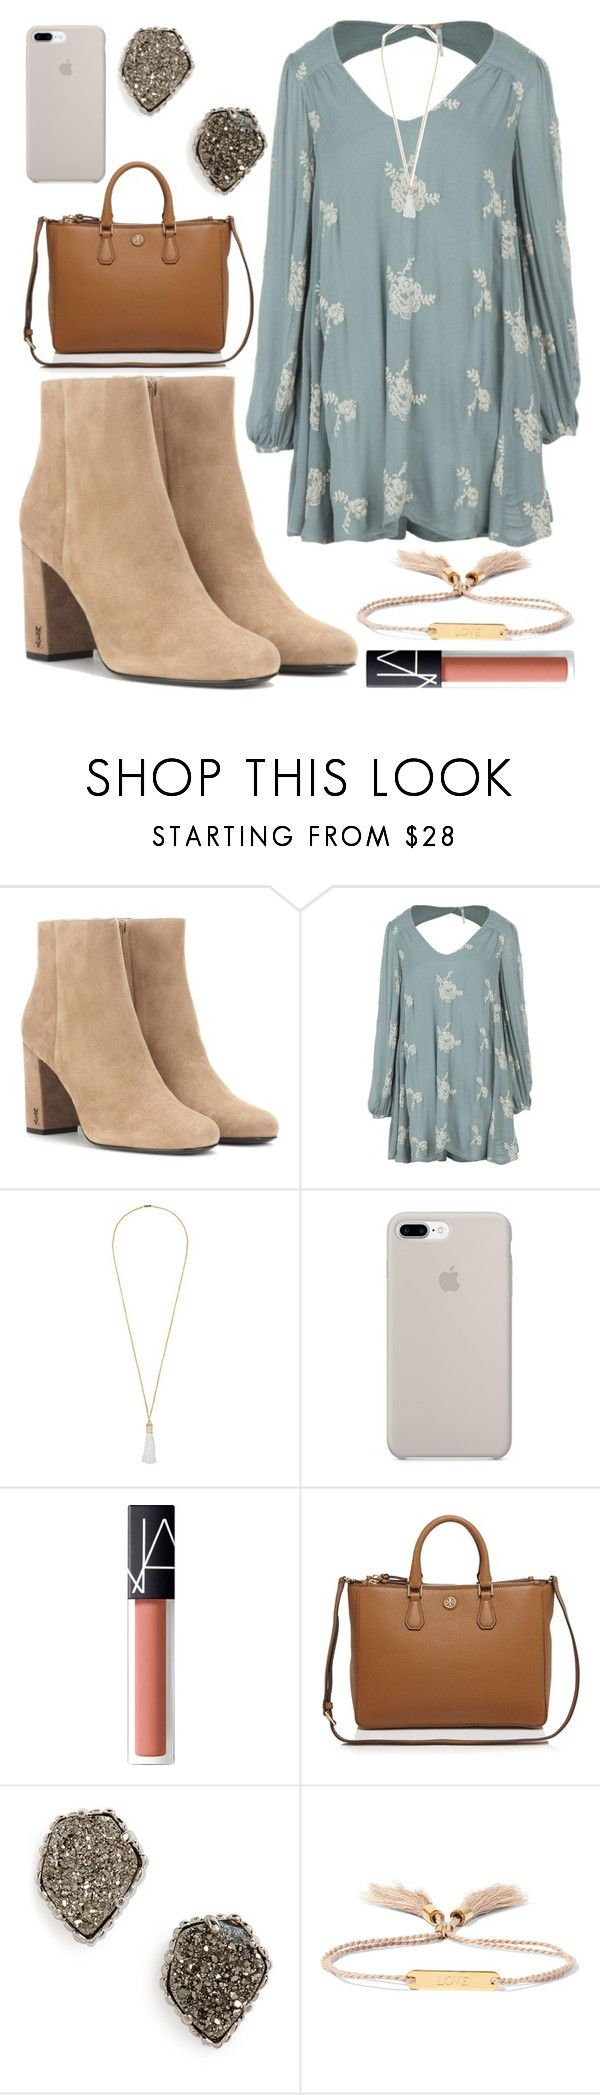 Young Wild Free, Eddie Borgo, Kendra Scott, Nars Cosmetics, Tory Burch,  Free People, Yves Saint Laurent, Saints, Blouses